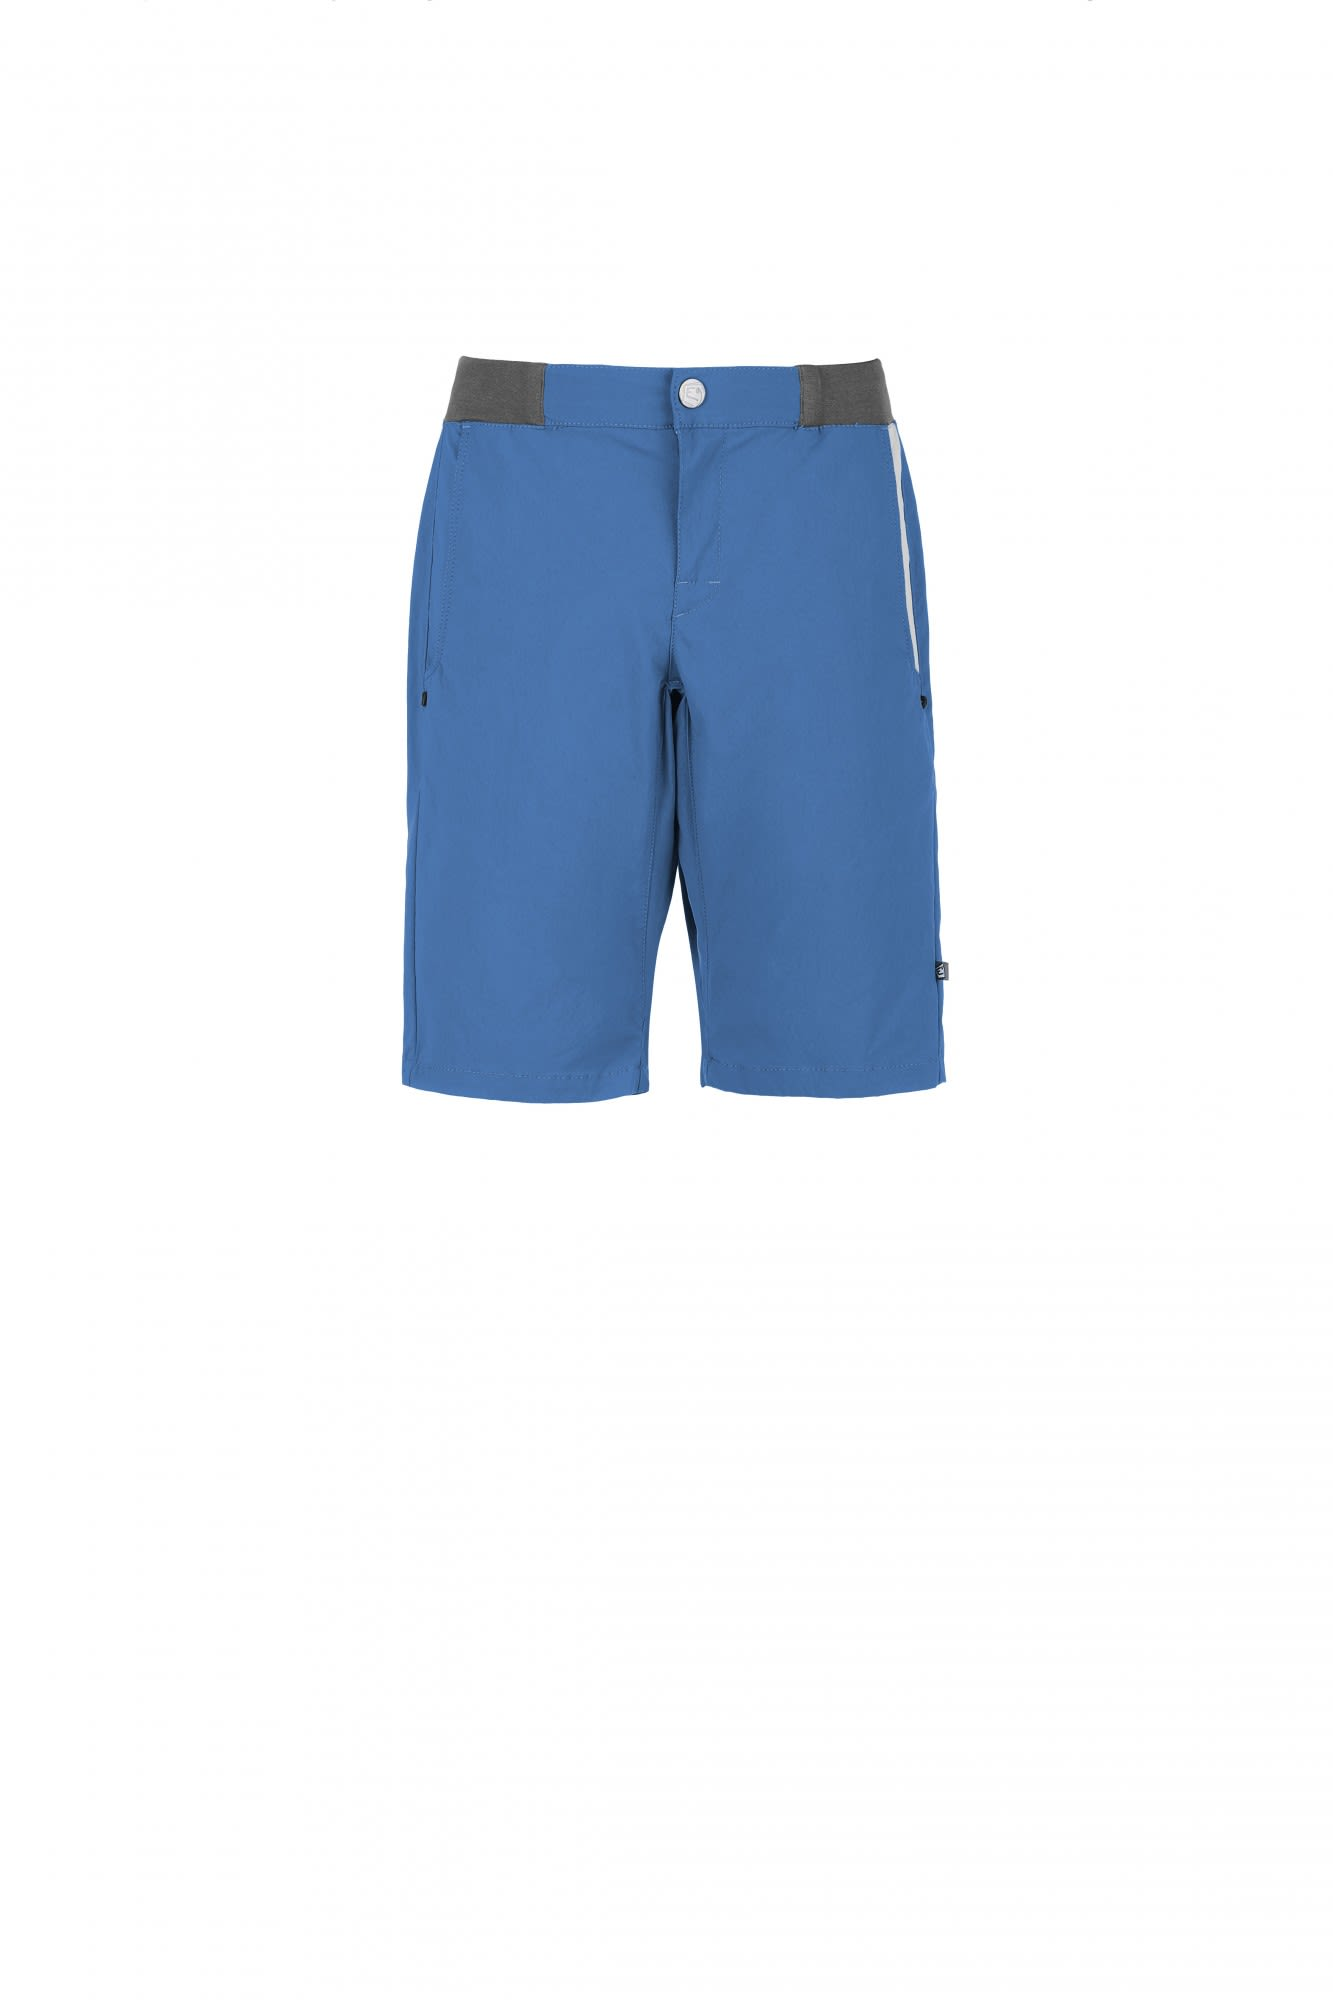 E9 HIP Blau, Male Shorts, S